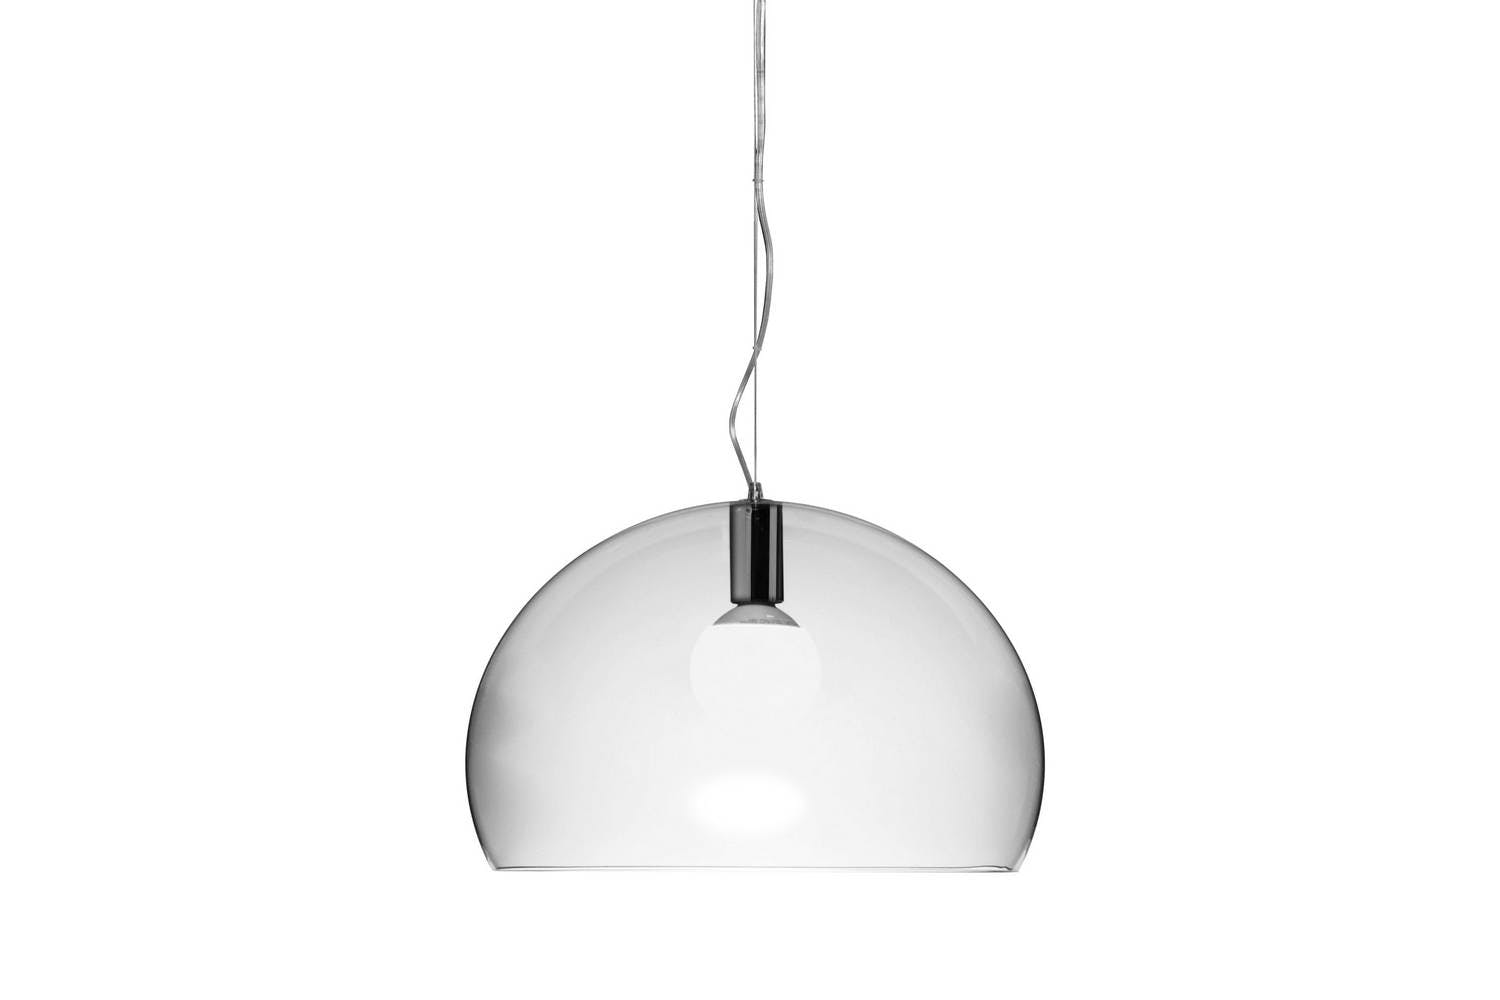 Fl y suspension lamp by ferruccio laviani for kartell space furniture